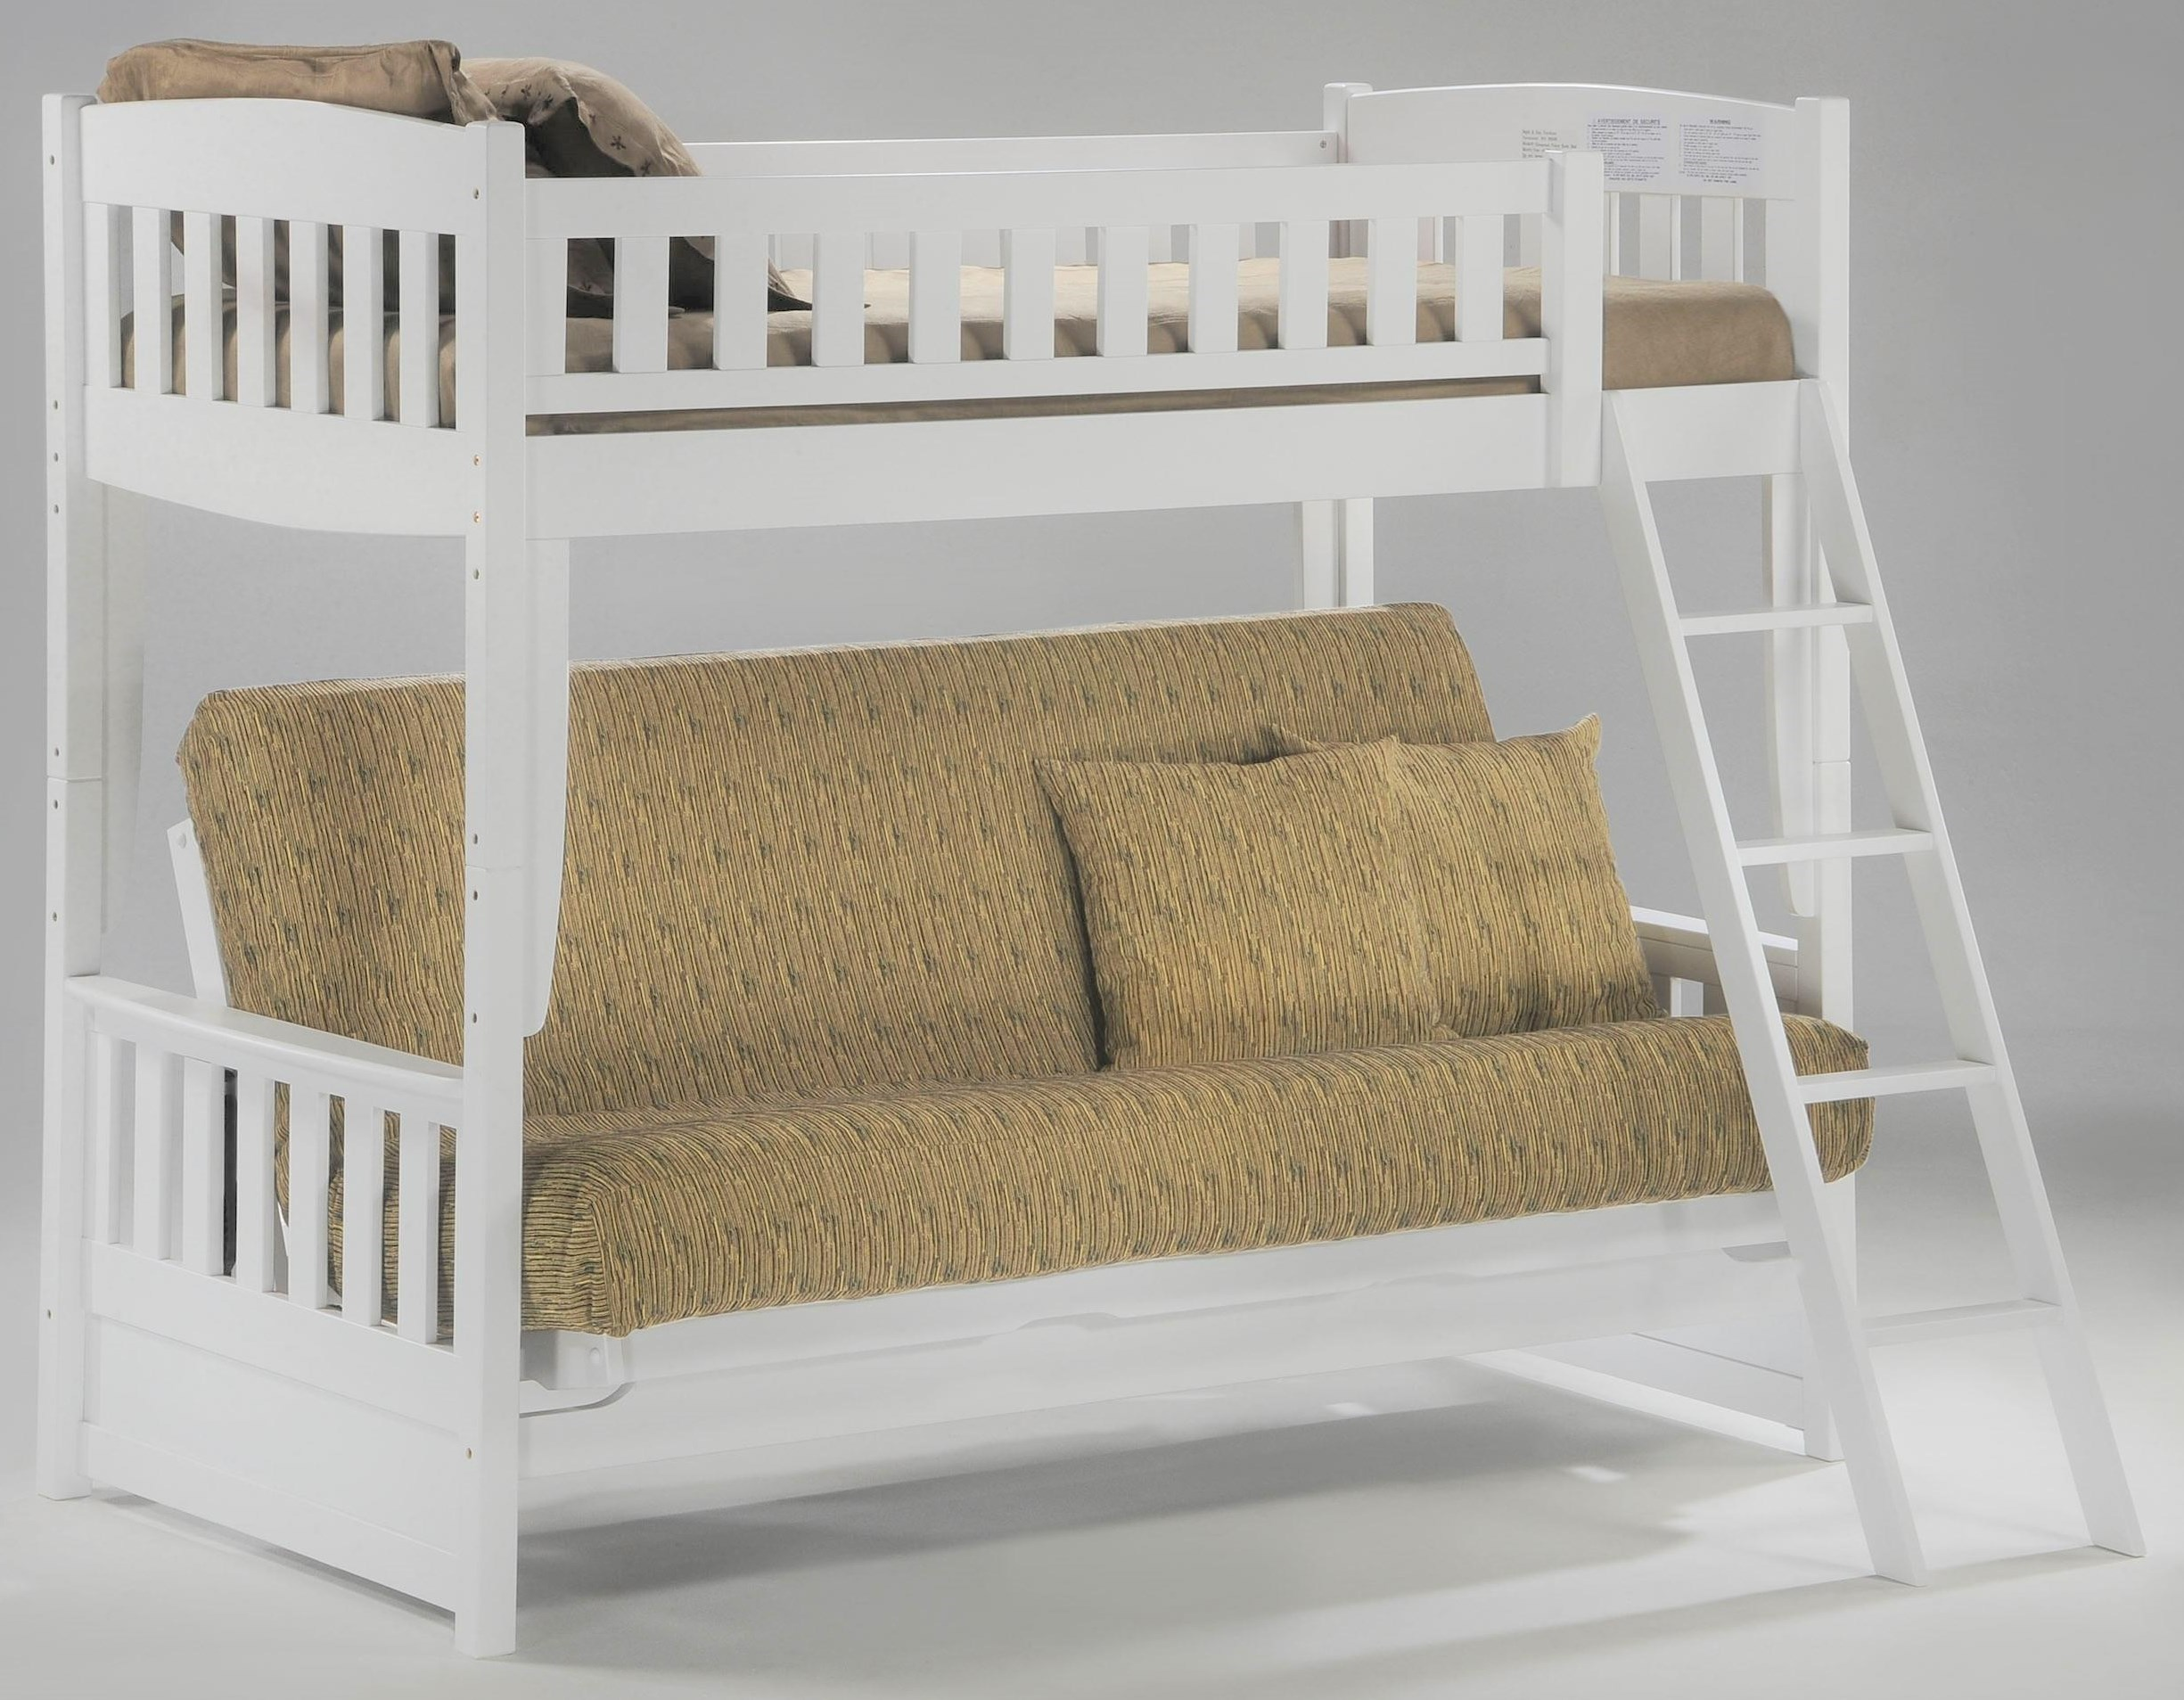 Pacific Manufacturing Cinnamon Twin Over Futon Bunkbed Homeworld Pacific Manufacturing Cinnamon Twin Over Futon Bunkbed Homeworld Furniture Bunk Beds